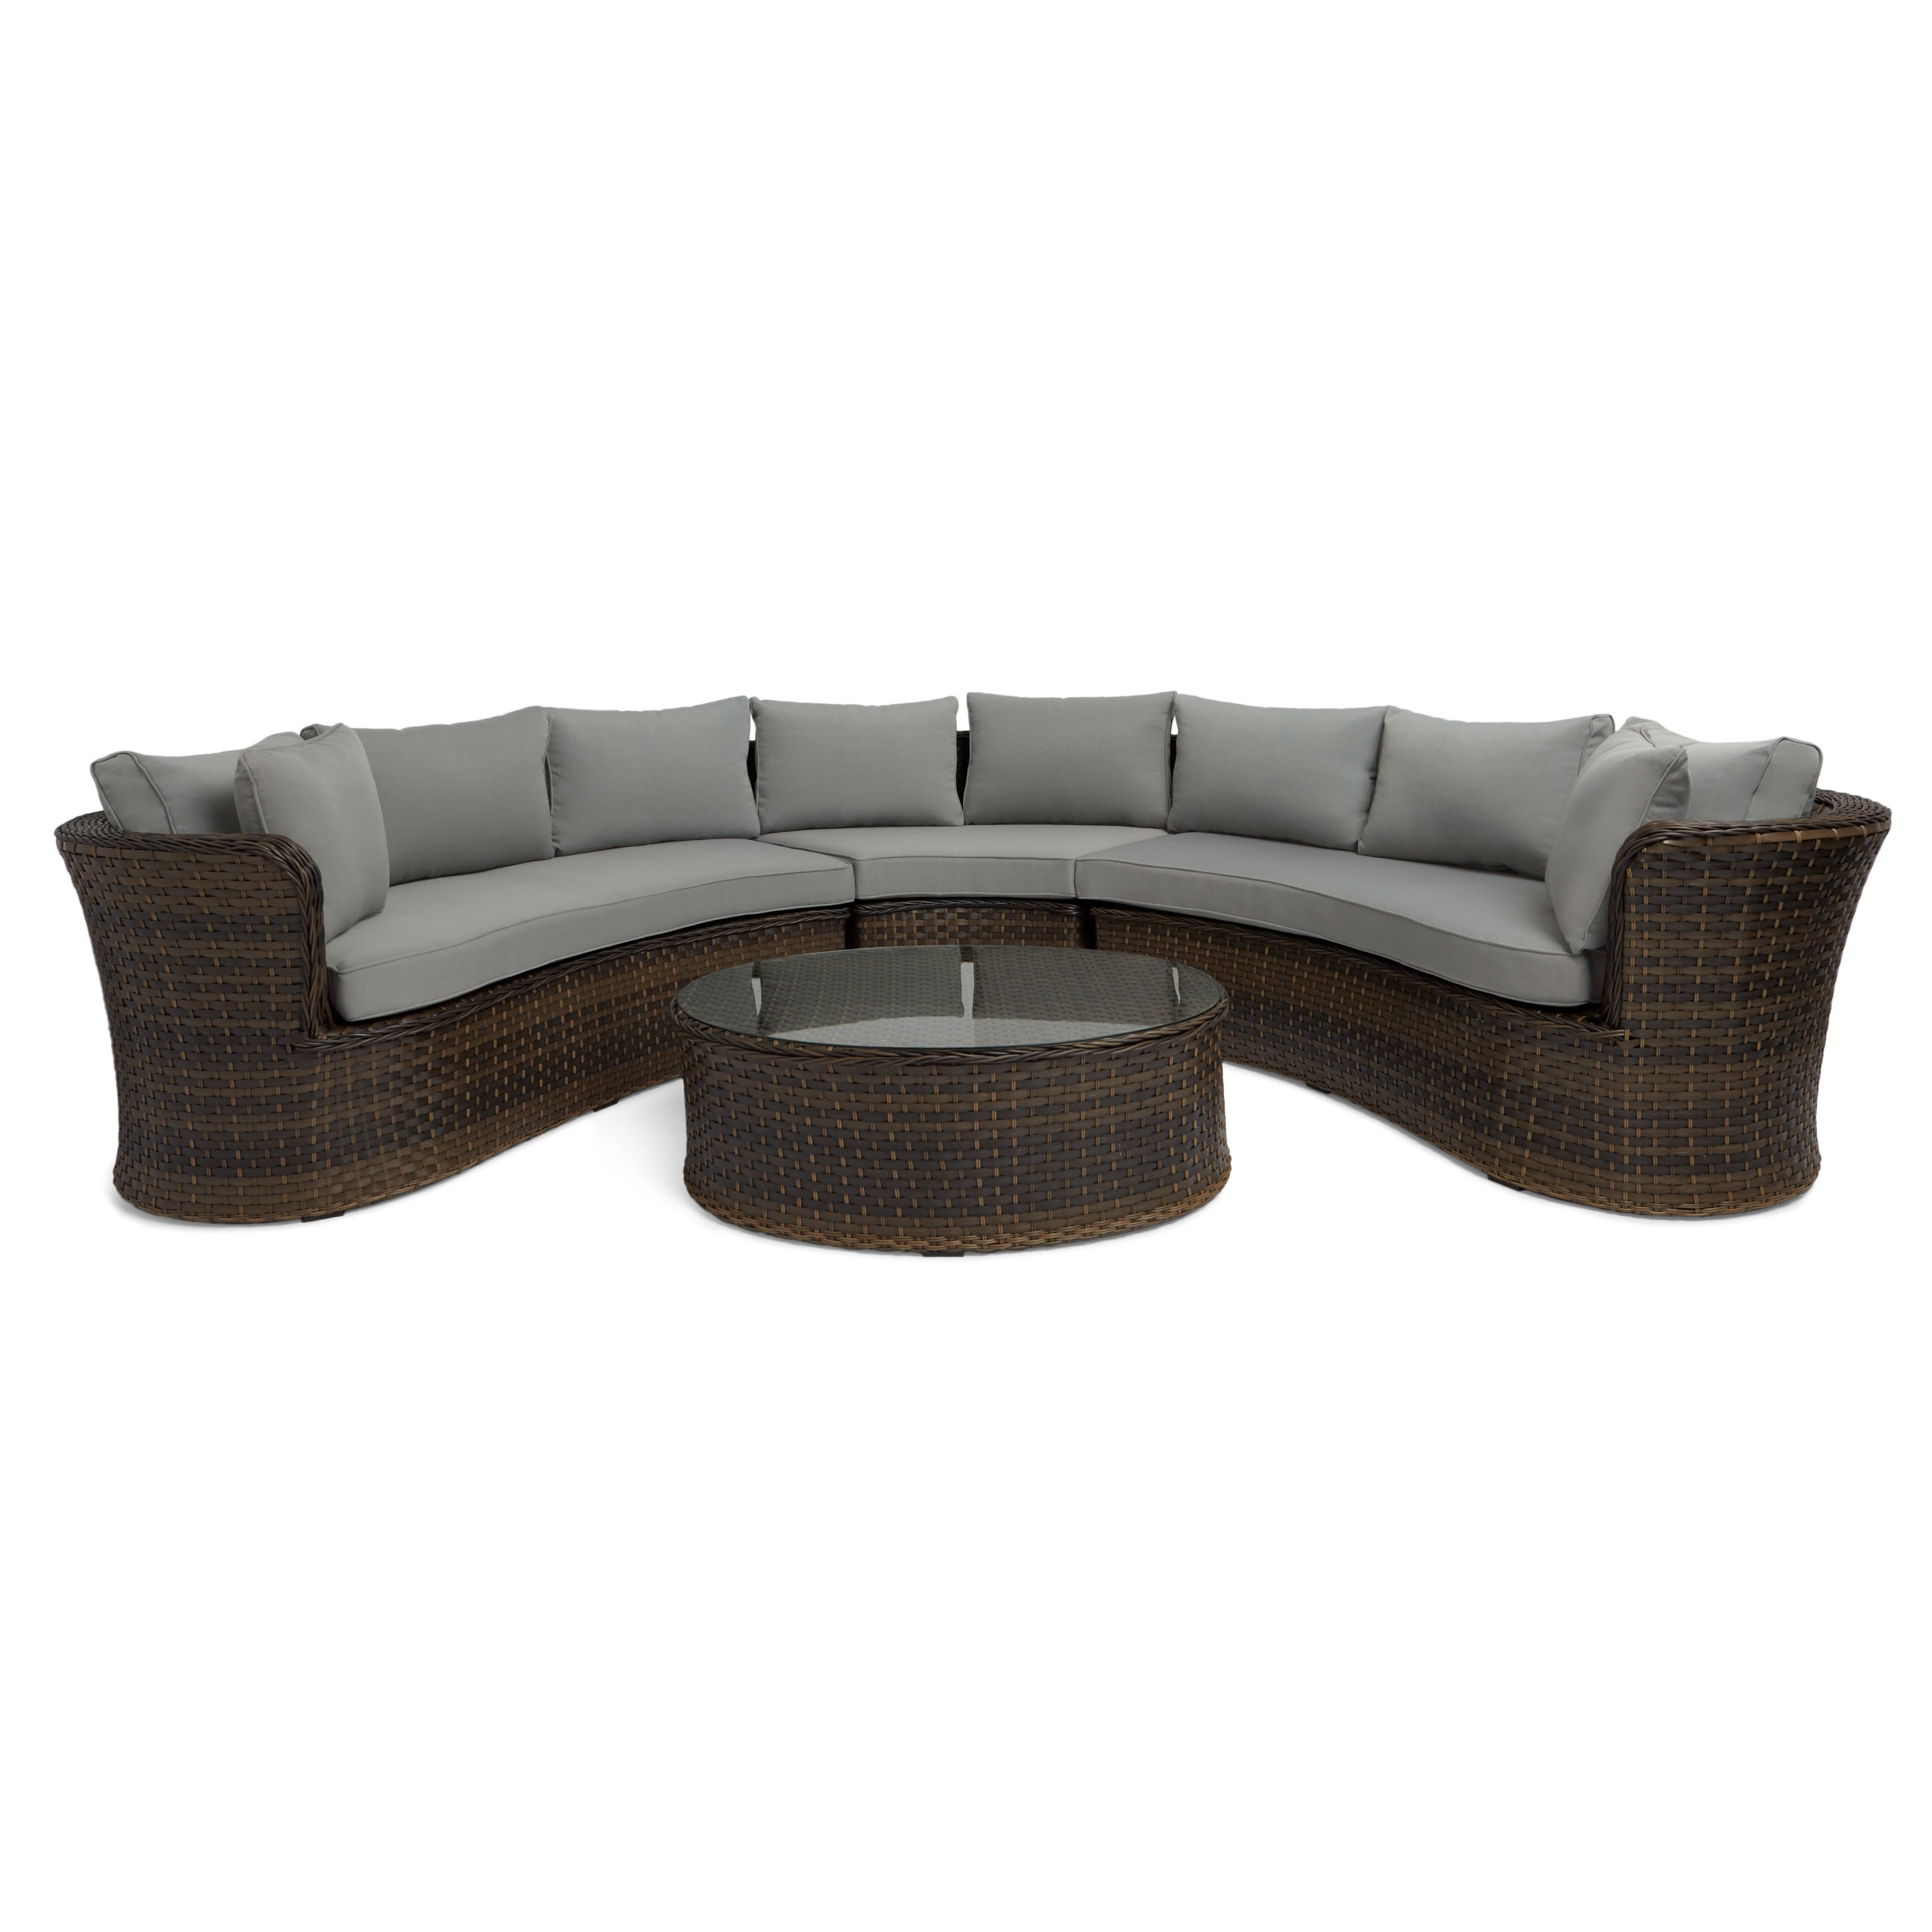 Falmouth Patio Sofas With Cushions For Well Liked Havenside Home Falmouth 4 Piece Sofa Set (View 15 of 20)